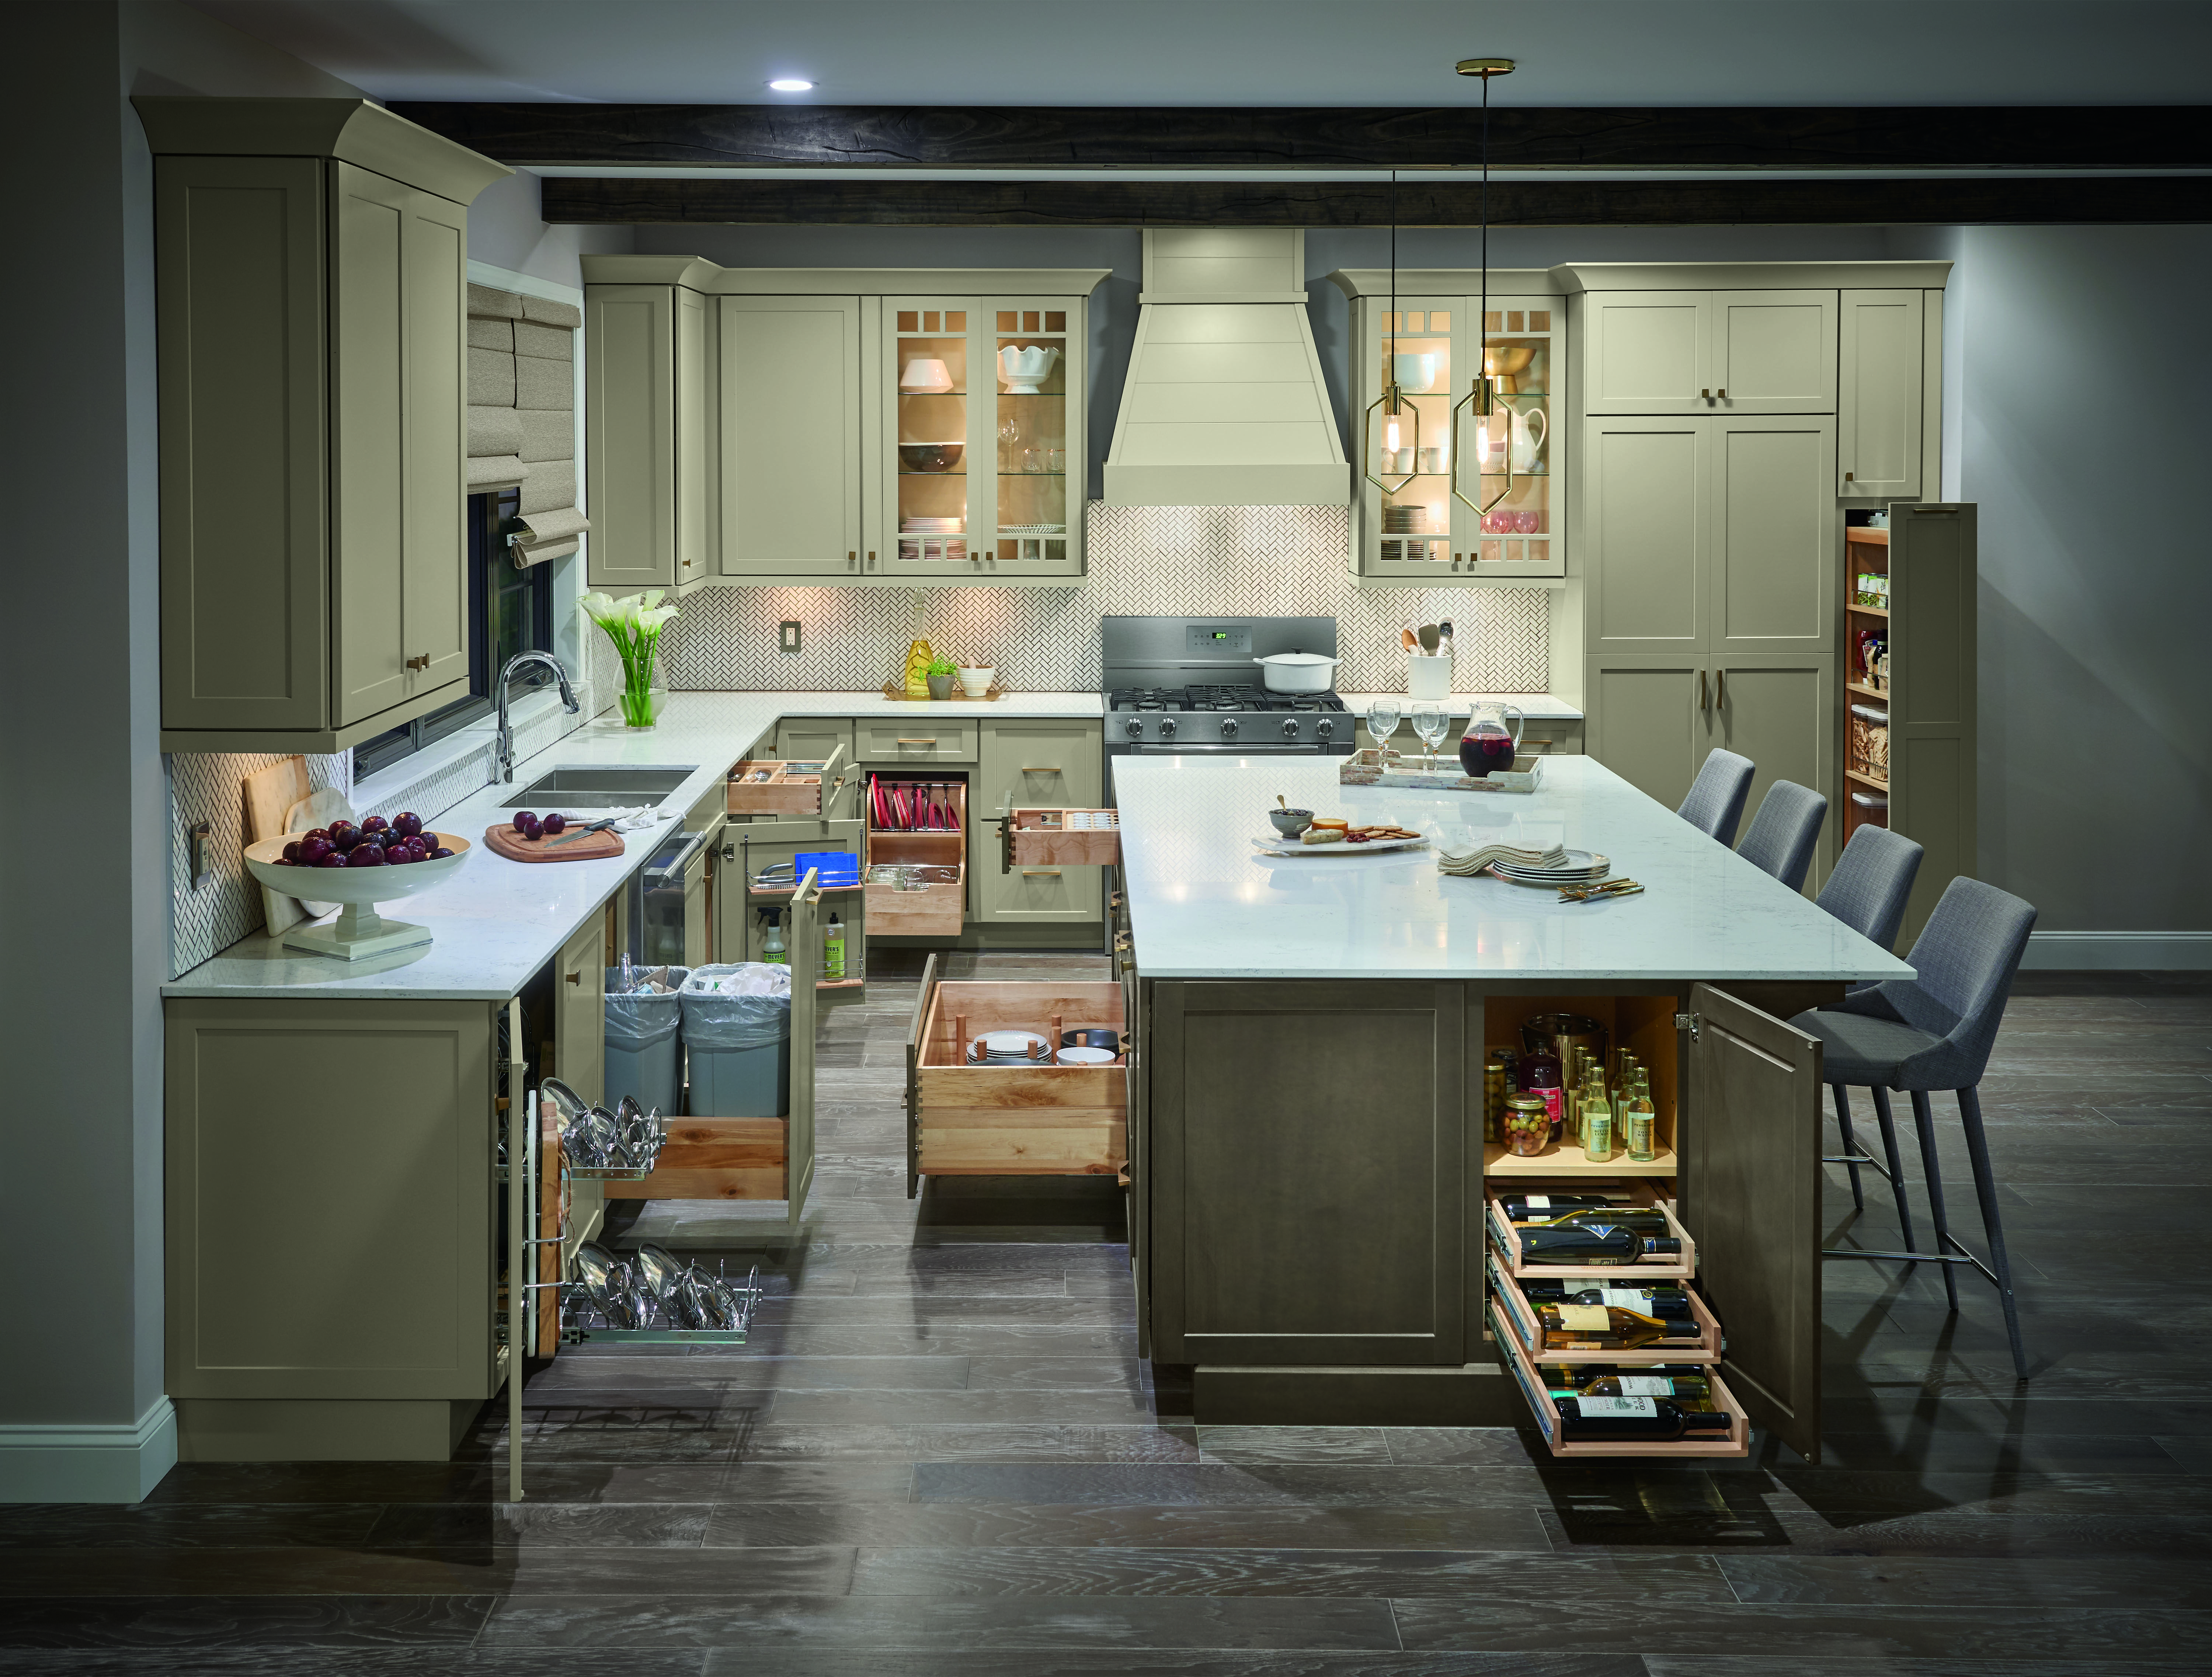 Cabinet Storage Solutions Discover The Possibilities Of Optimal Organization With Prosource Who Cabinet Storage Solutions Installing Cabinets Storage Cabinets